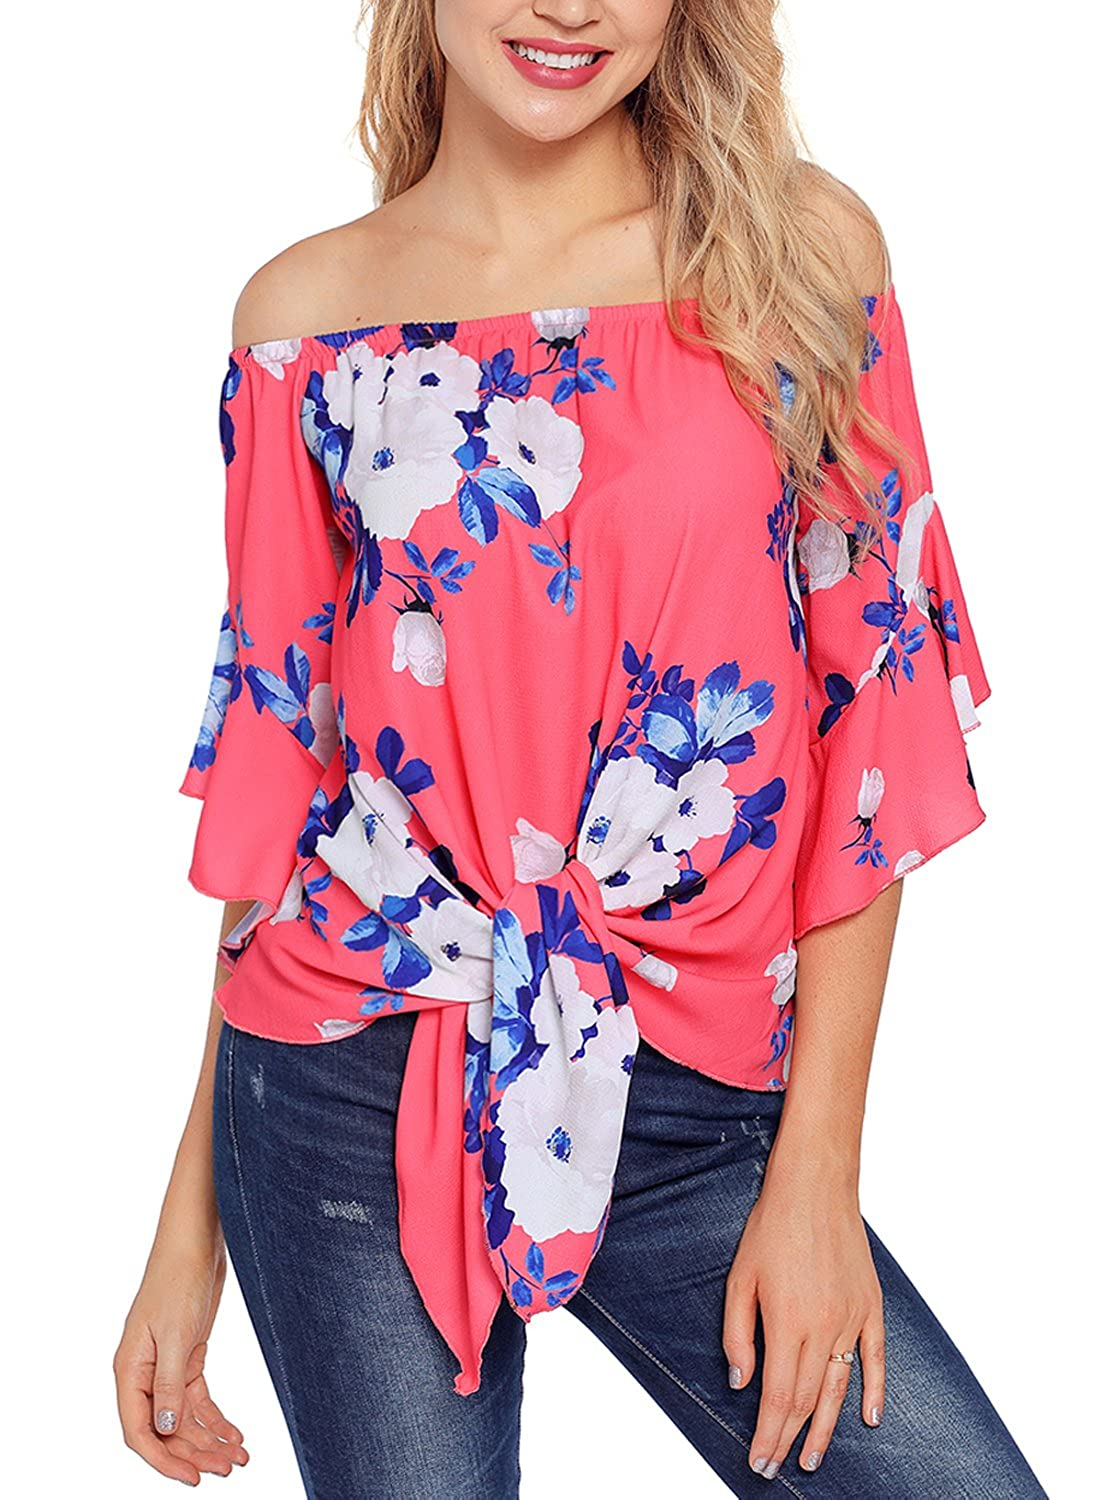 53ba3dd619200b Top 10 wholesale Cheap Off The Shoulder Blouses - Chinabrands.com